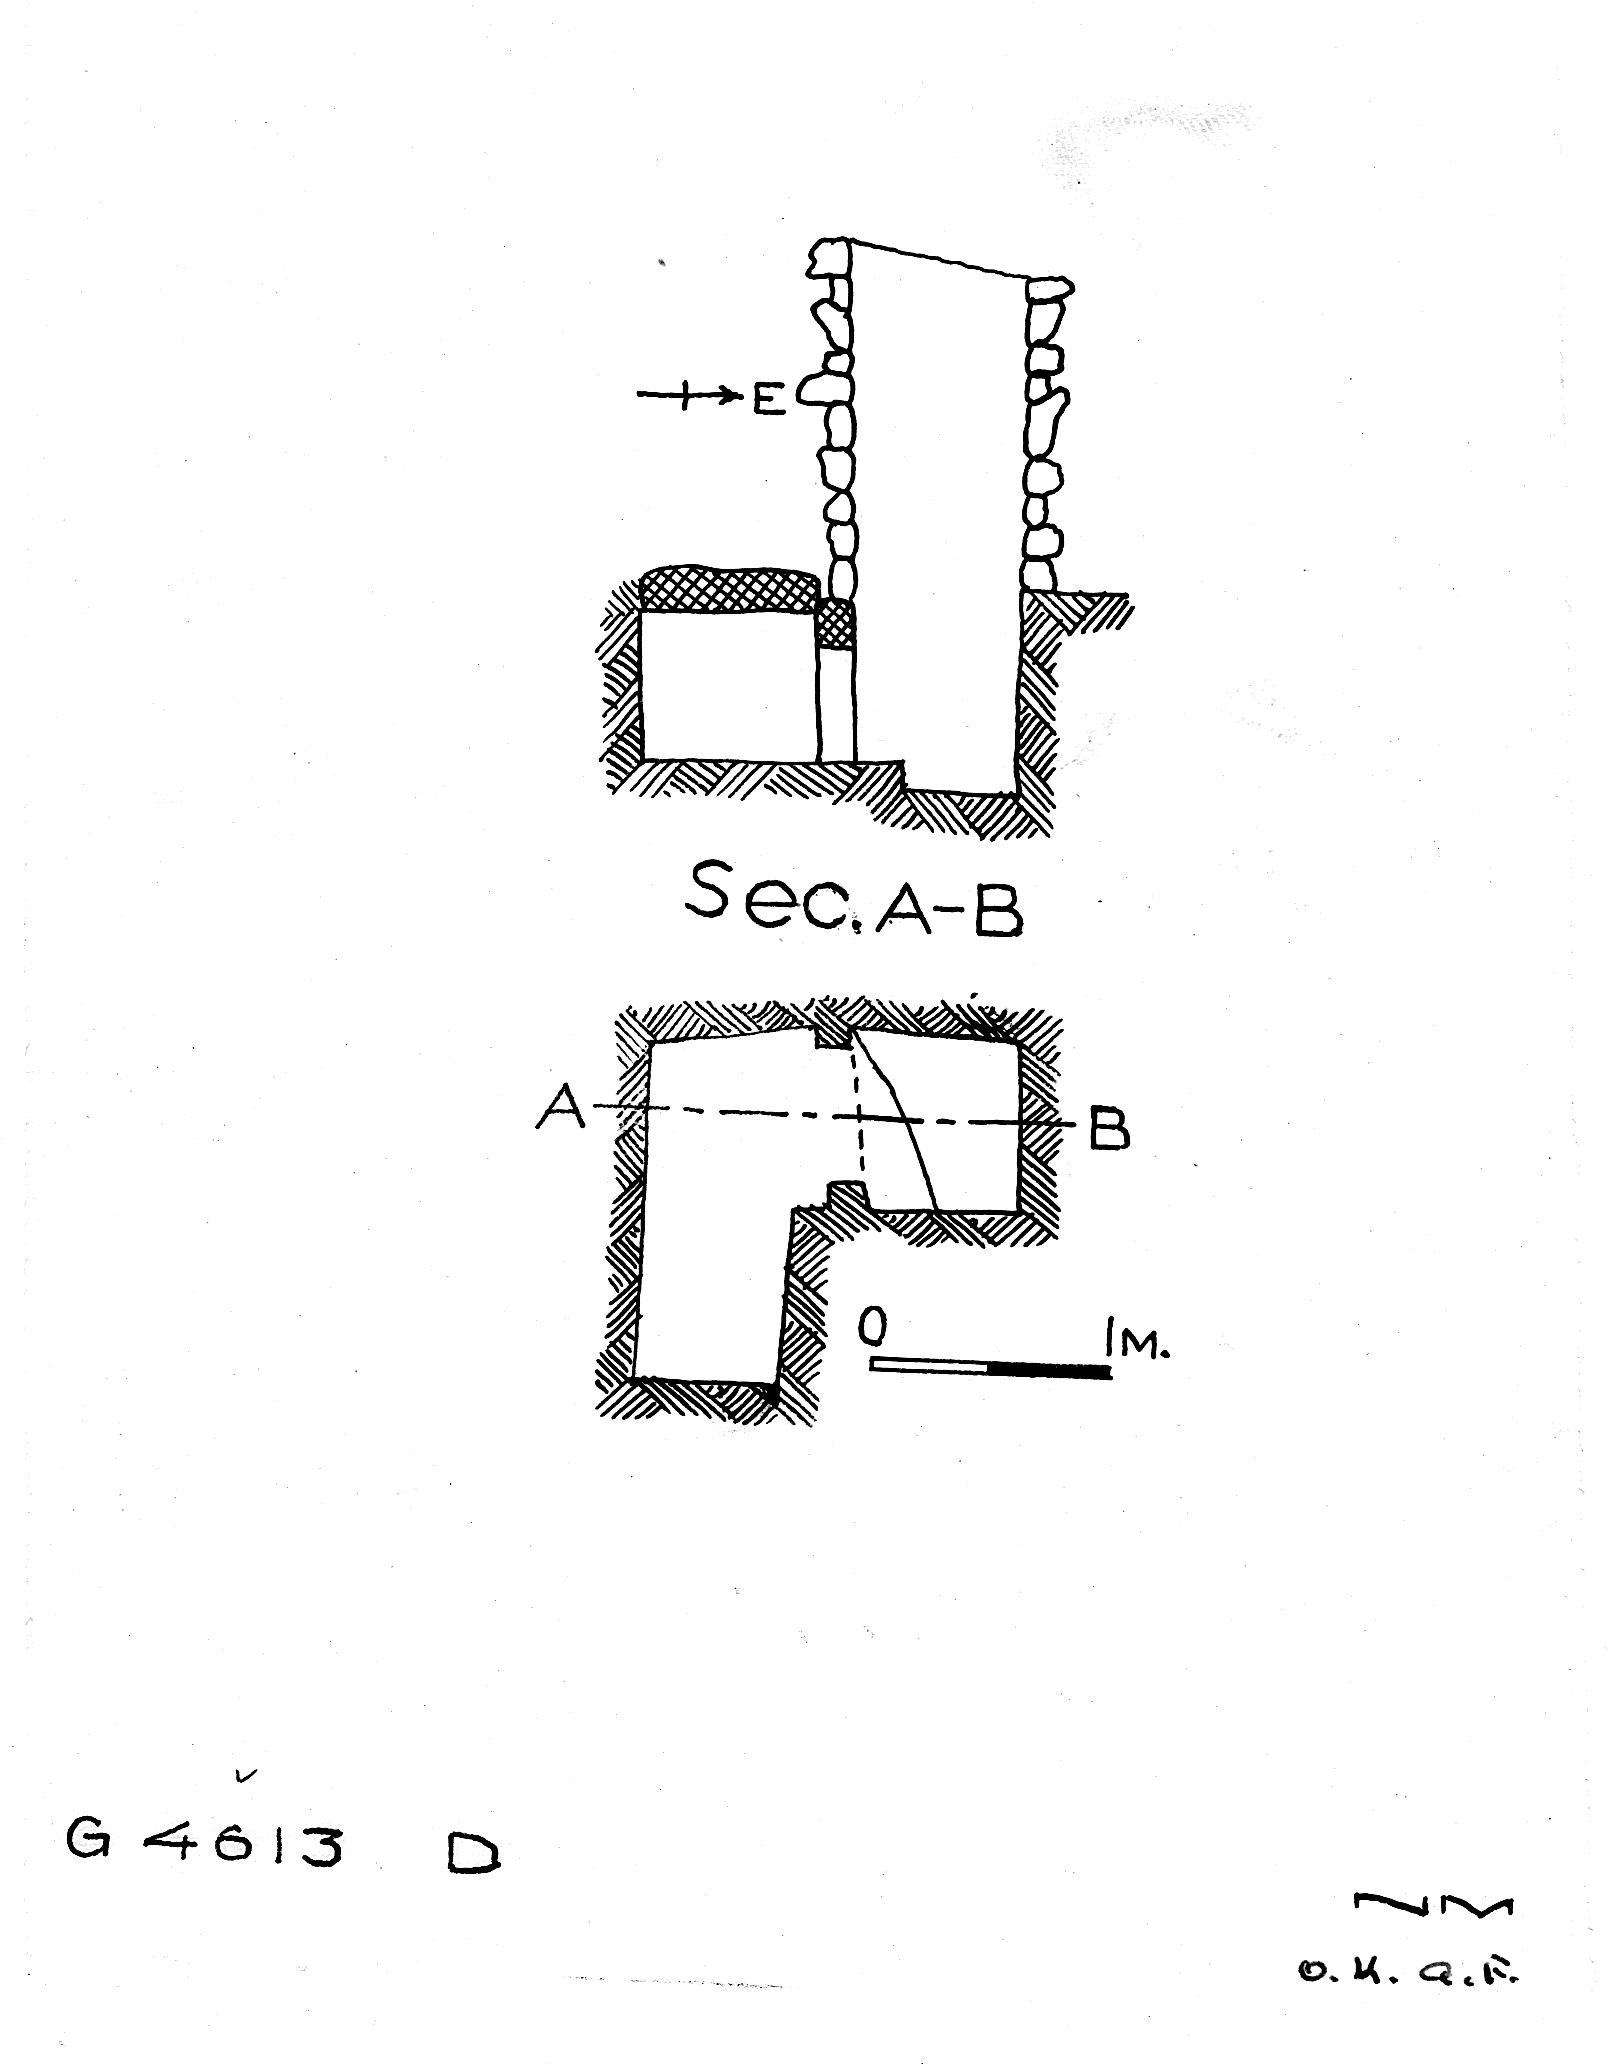 Maps and plans: G 4613, Shaft D